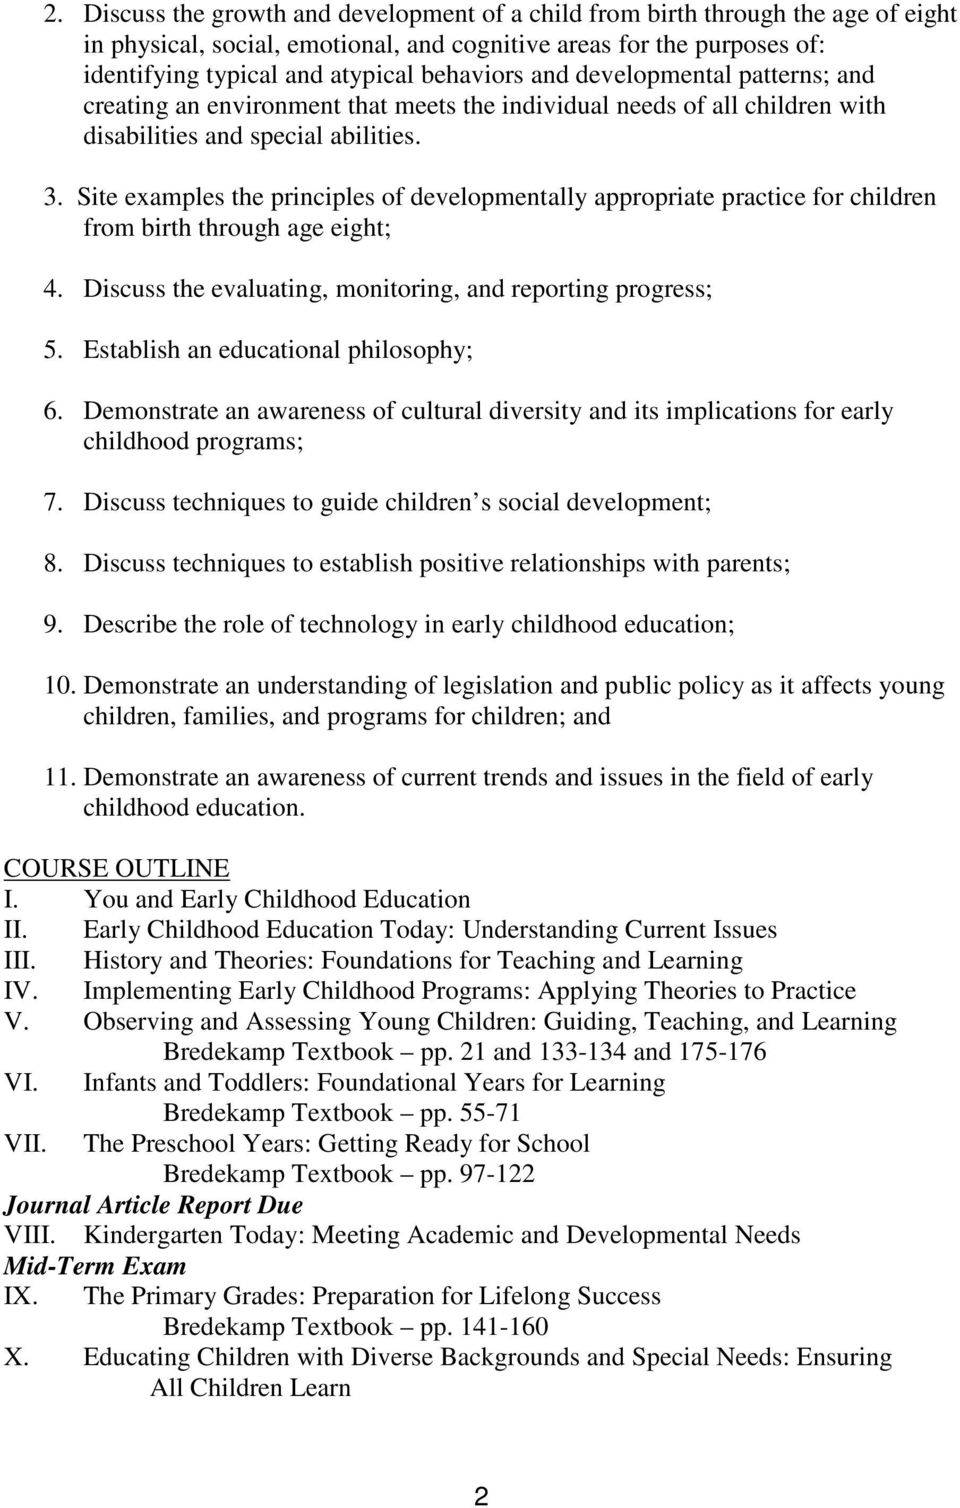 Site examples the principles of developmentally appropriate practice for children from birth through age eight; 4. Discuss the evaluating, monitoring, and reporting progress; 5.